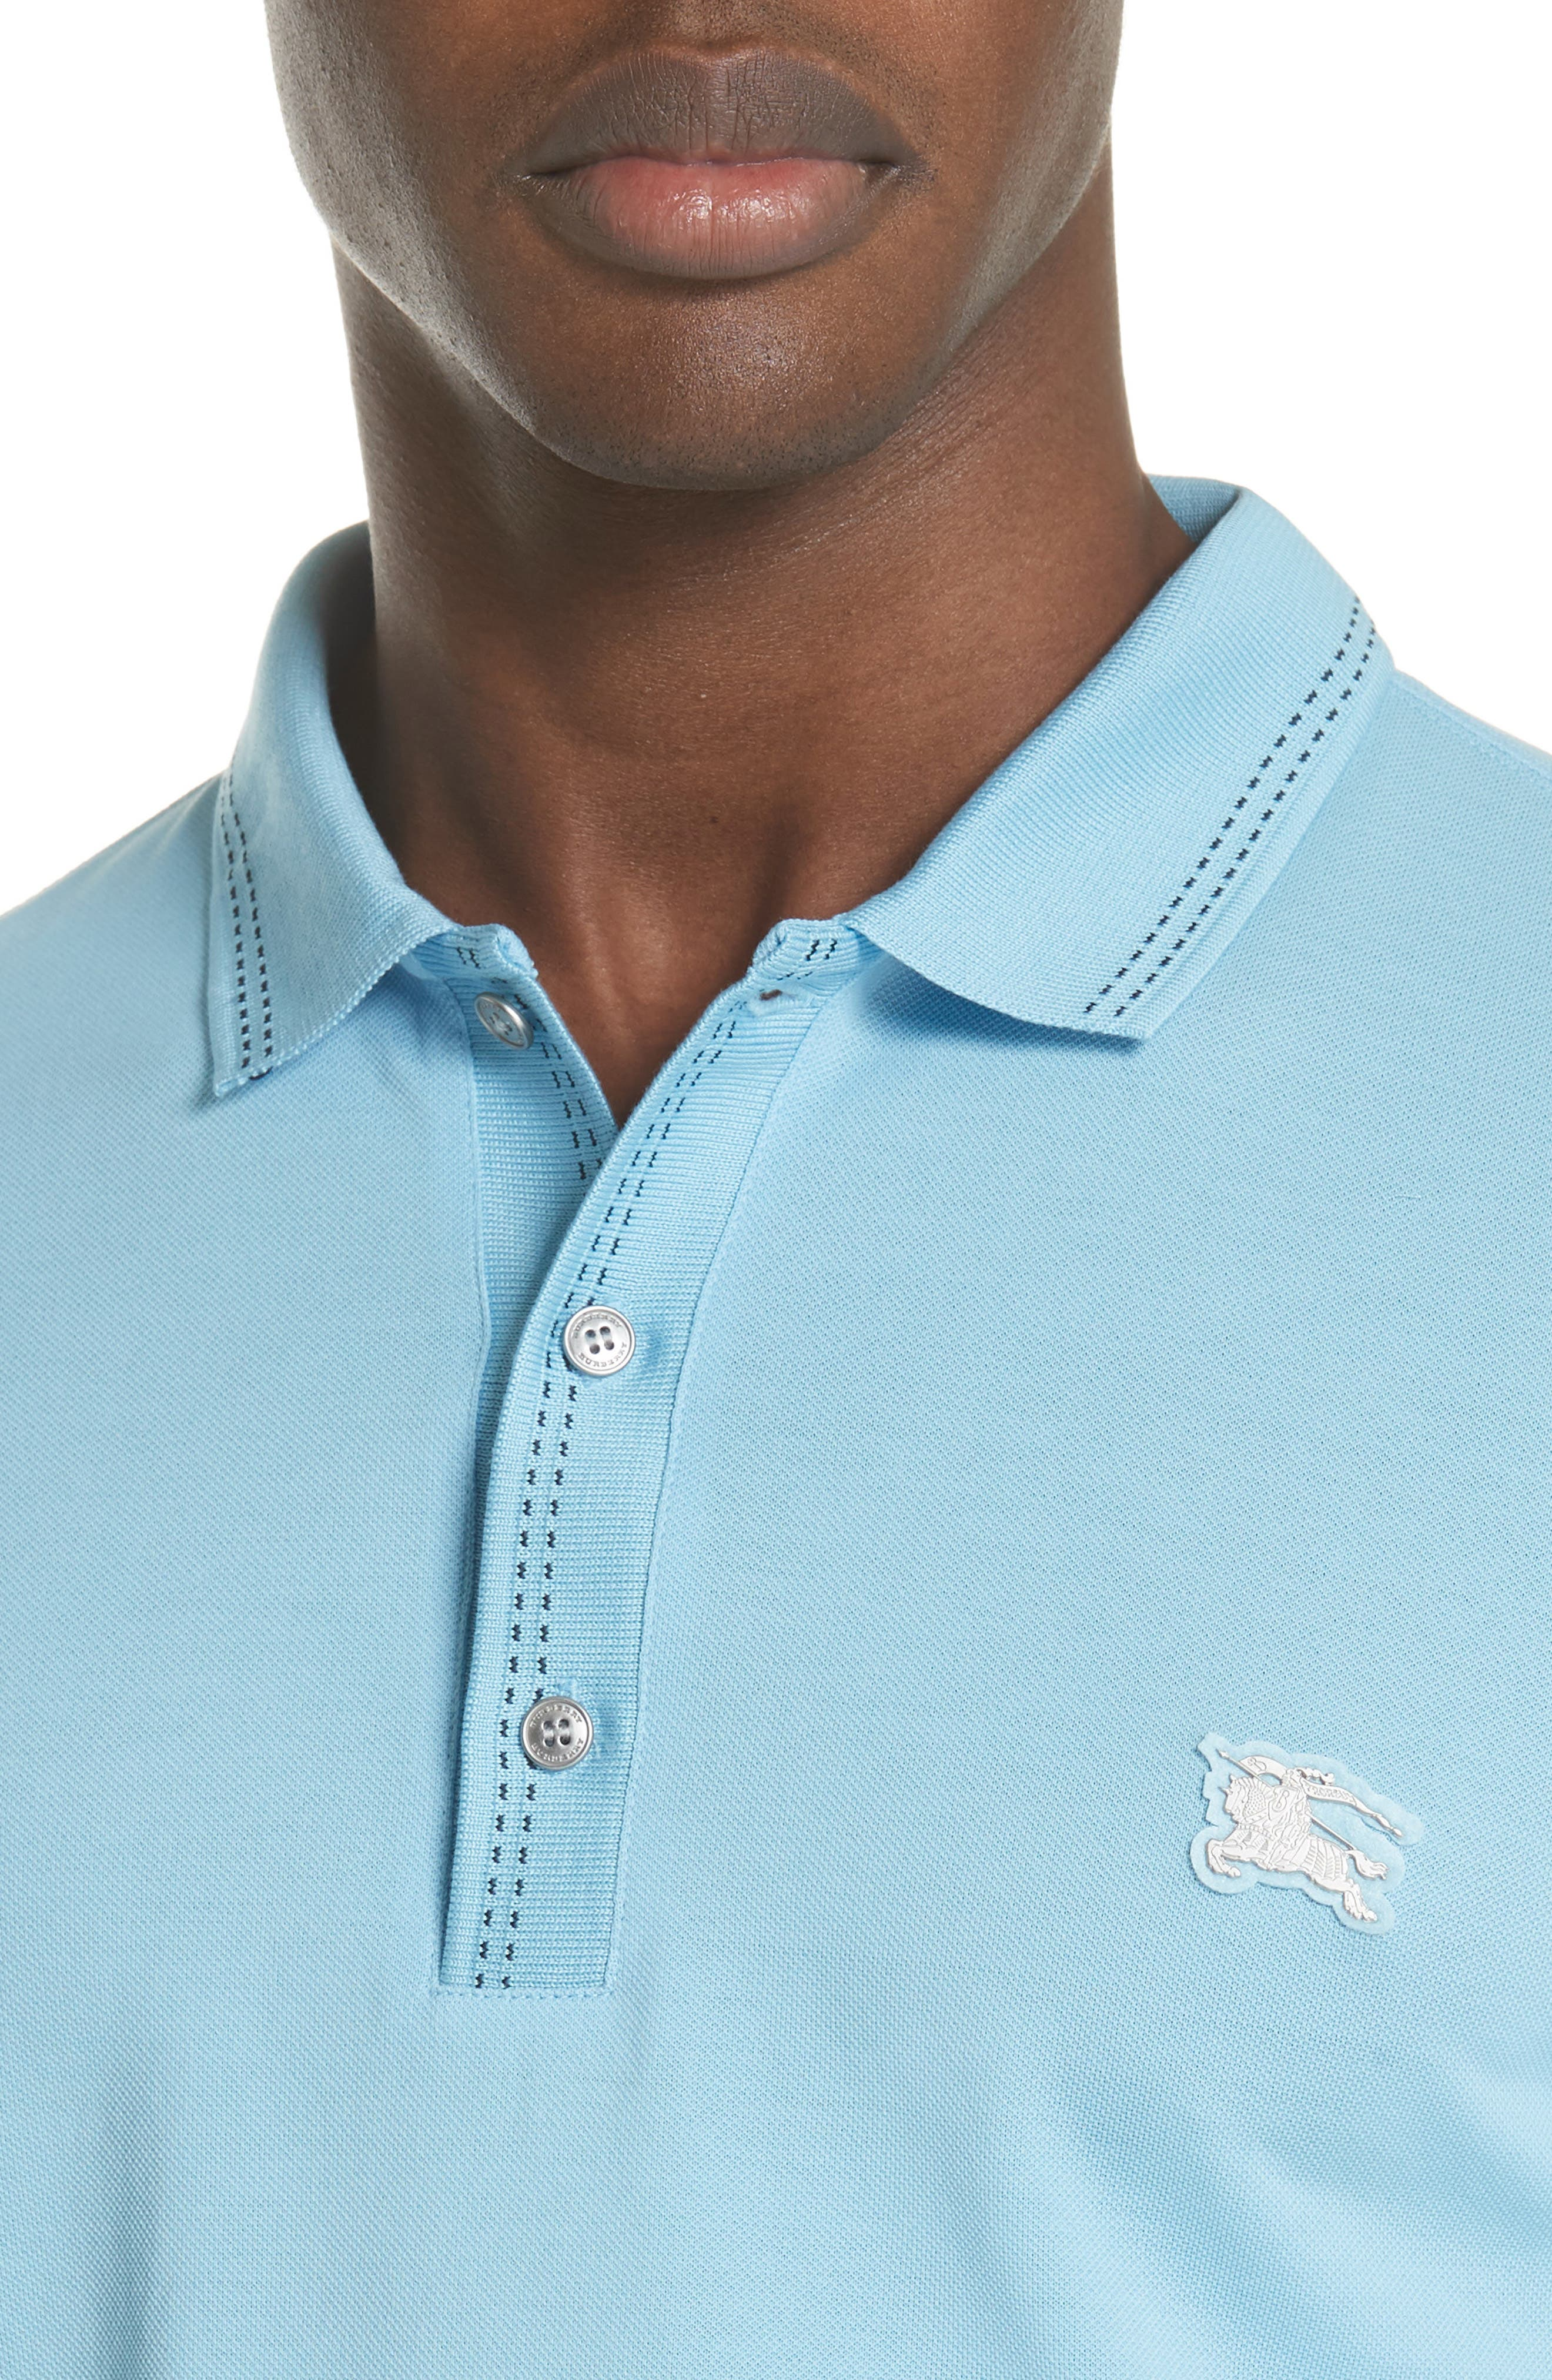 Kenforth Polo,                             Alternate thumbnail 4, color,                             Pale Turquoise